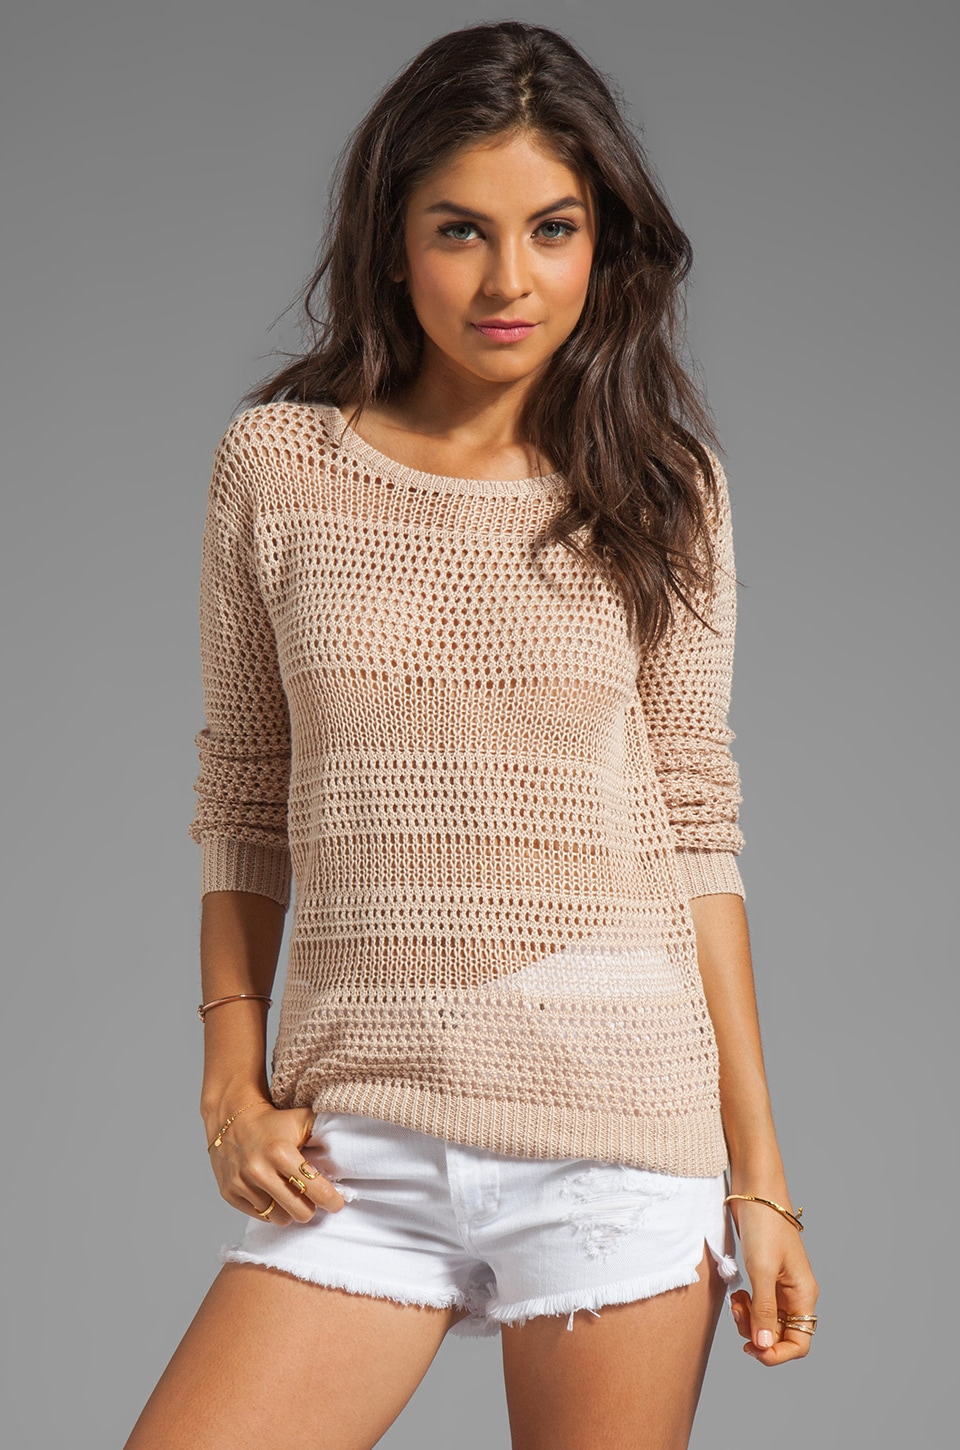 Joie Resi Sweater in Dusty Pink Sand